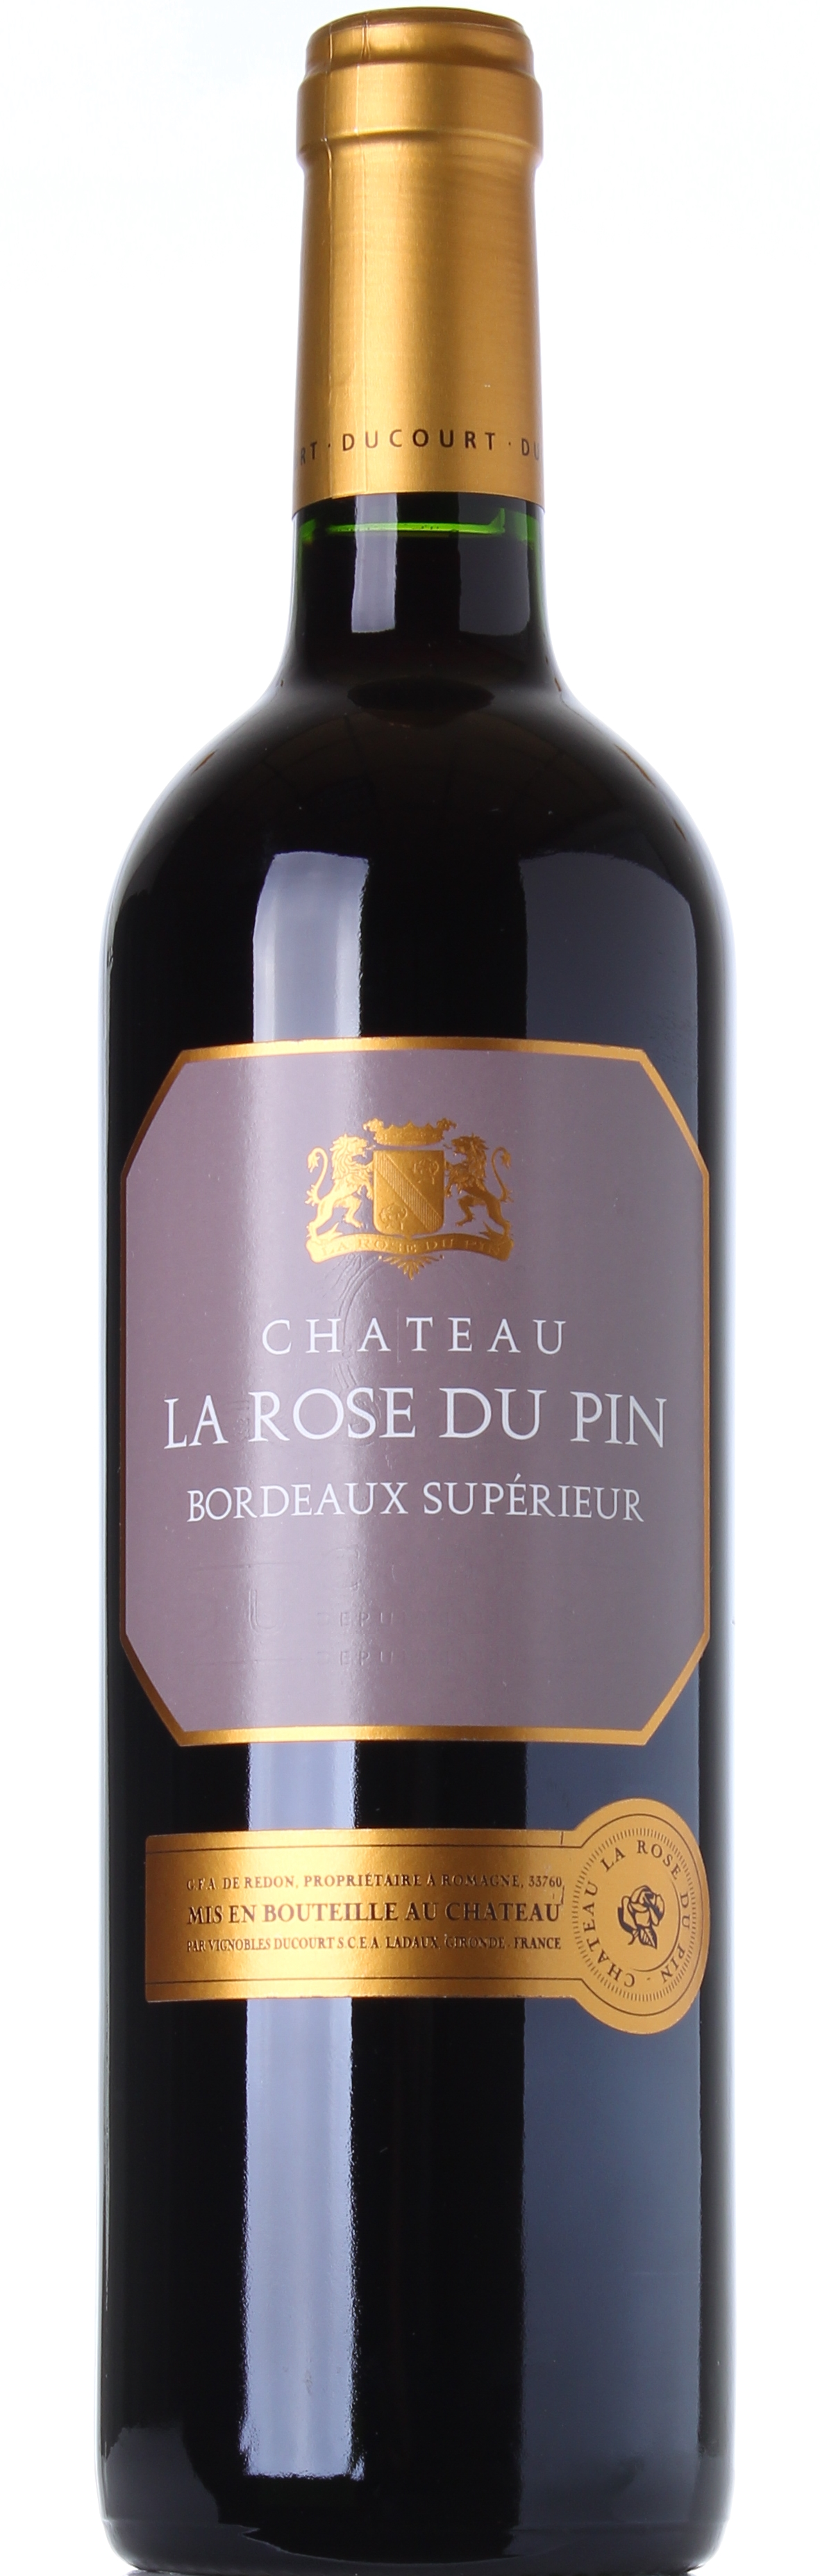 DUCOURT CHATEAU LA ROSE DU PIN 2009